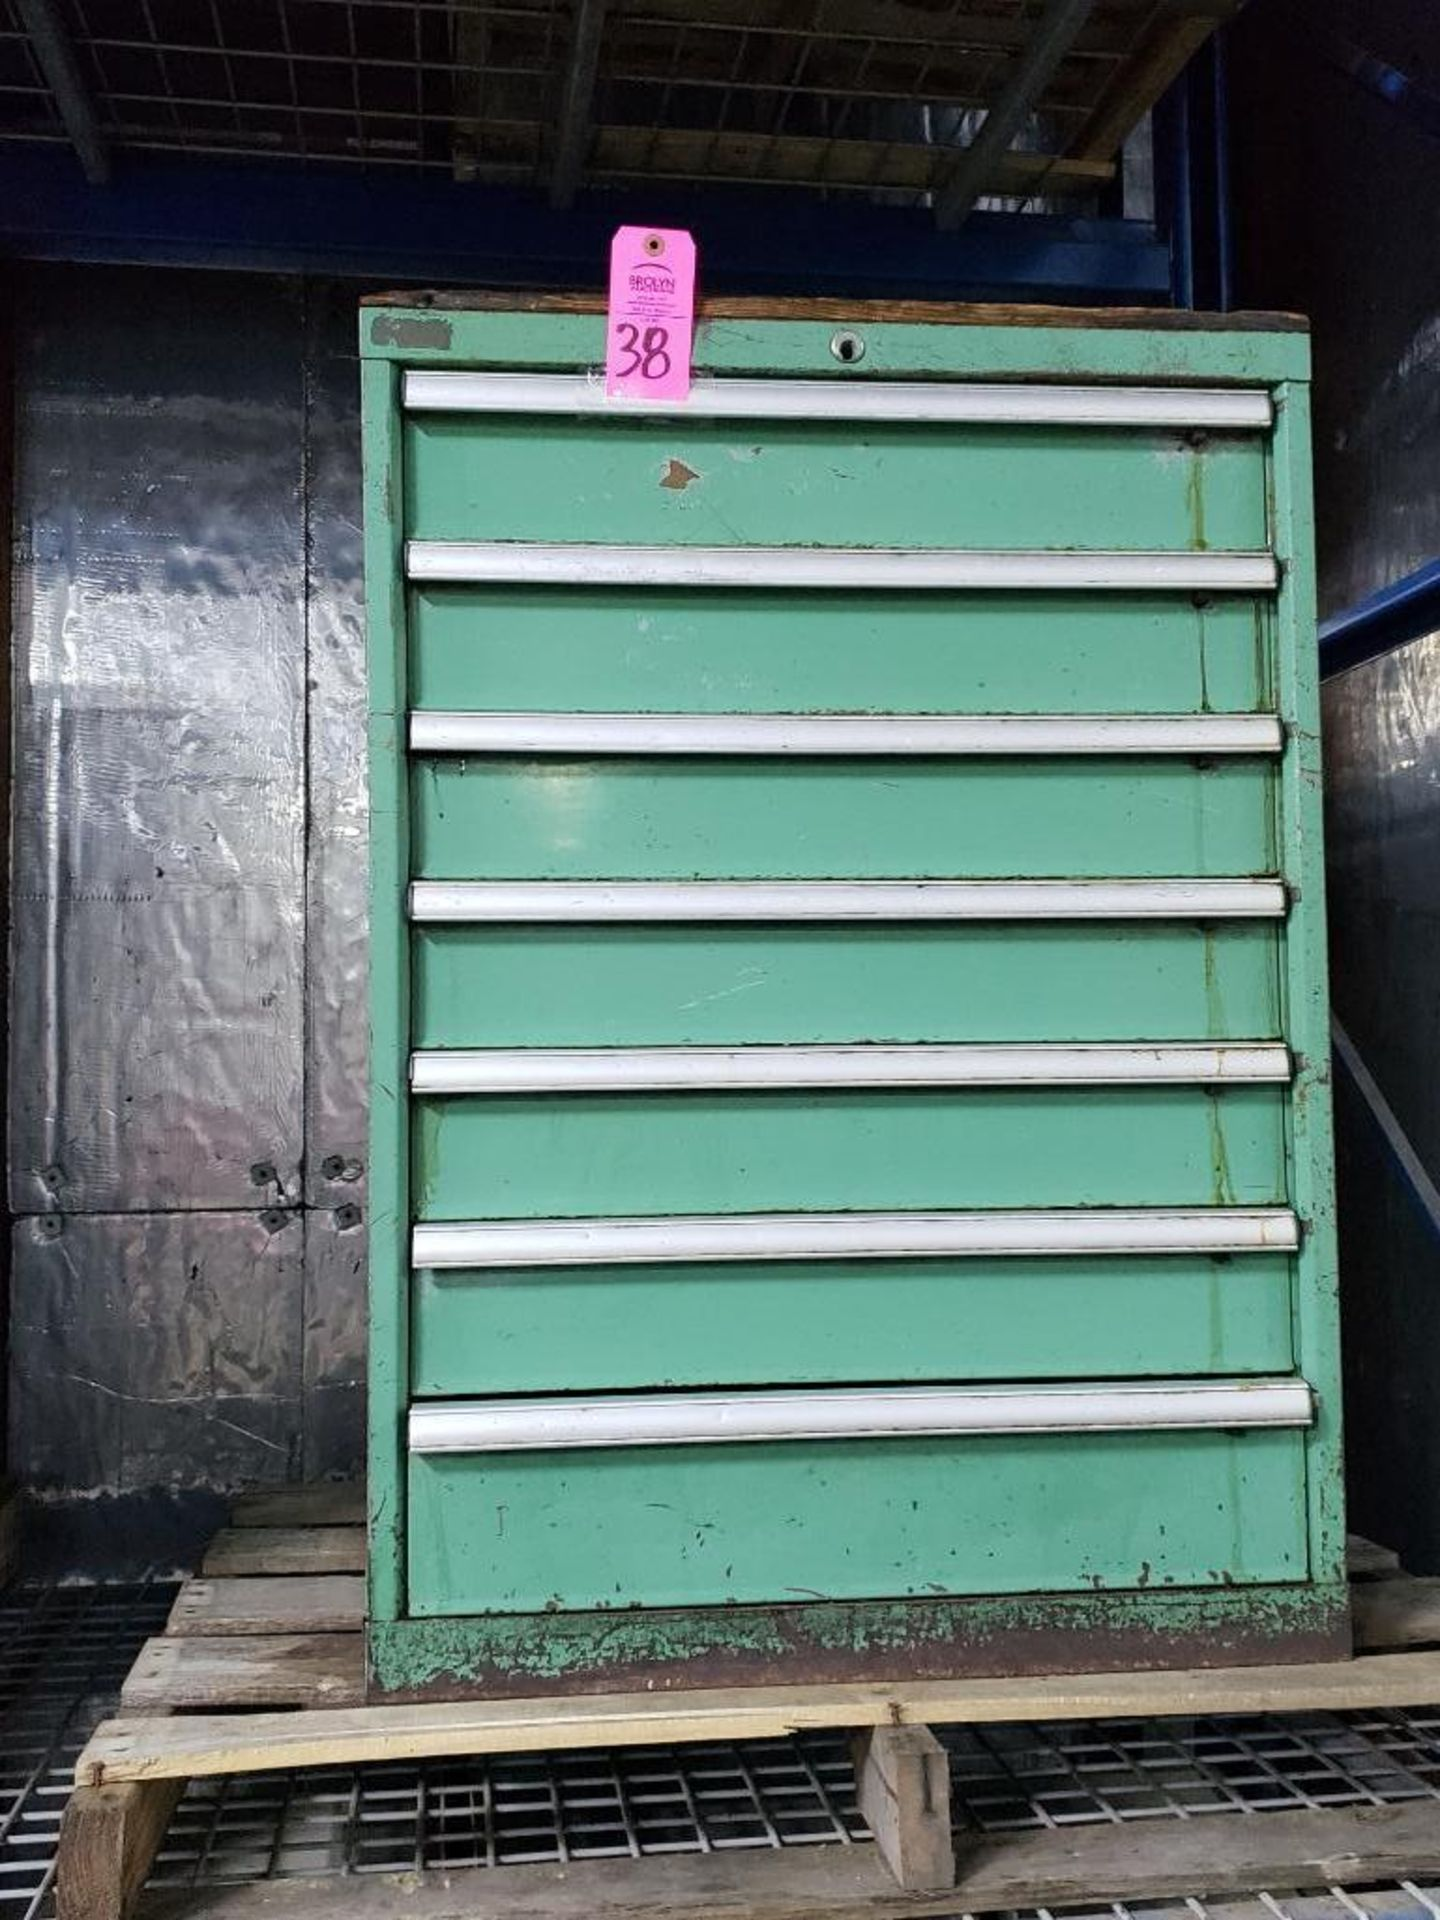 Lot 38 - 7 drawer Tool cabinet. Overall dimensions 40Tx28Wx23D.